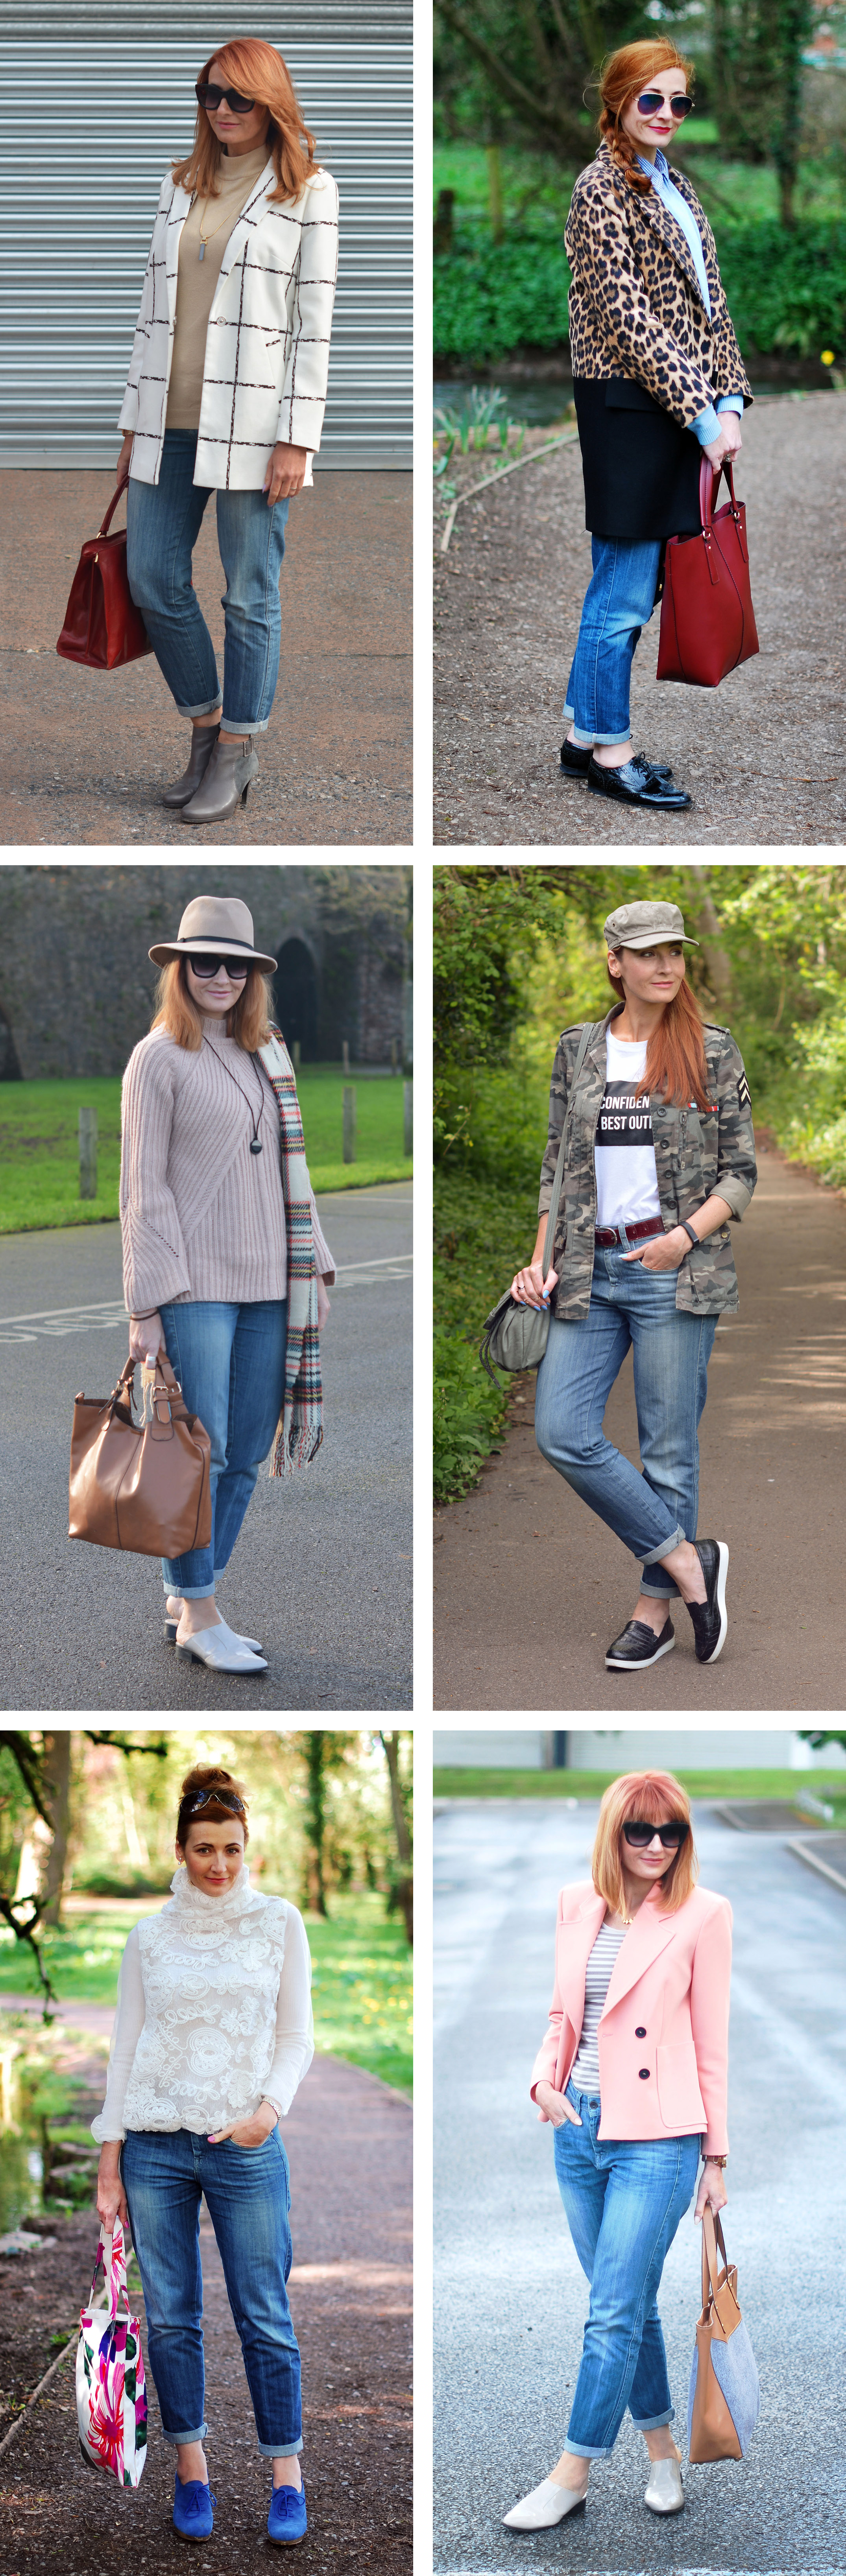 6 Ways to Wear Boyfriend Jeans | Not Dressed As Lamb, over 40 style